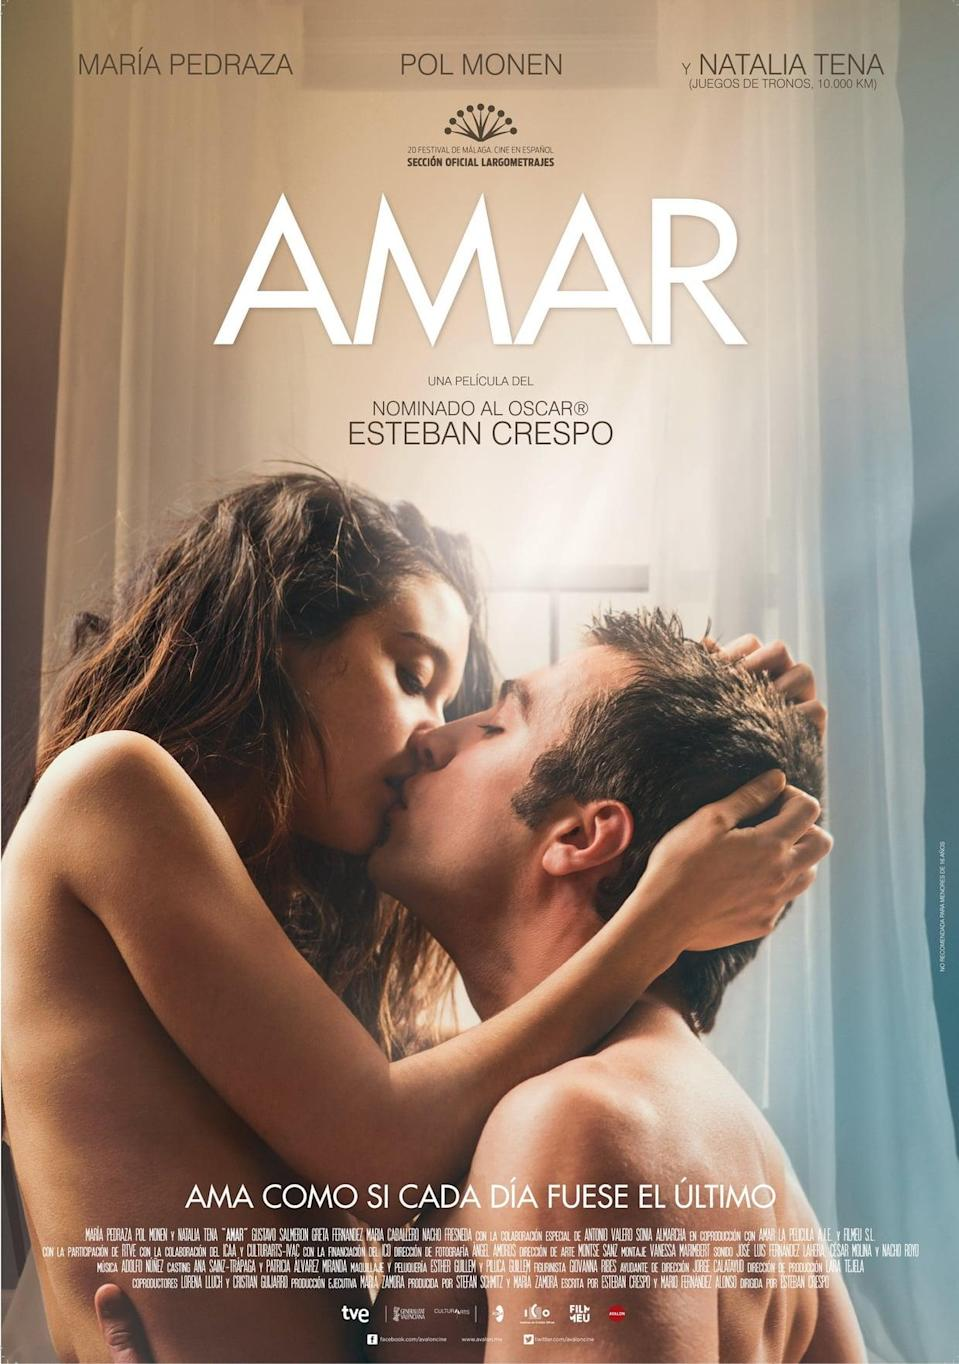 """<p>In the Spanish film <a href=""""https://www.netflix.com/title/80113589"""" class=""""link rapid-noclick-resp"""" rel=""""nofollow noopener"""" target=""""_blank"""" data-ylk=""""slk:Amar""""><strong>Amar</strong></a>, two young people discover the intensity of first love while also struggling to face the world of adulthood.</p>"""